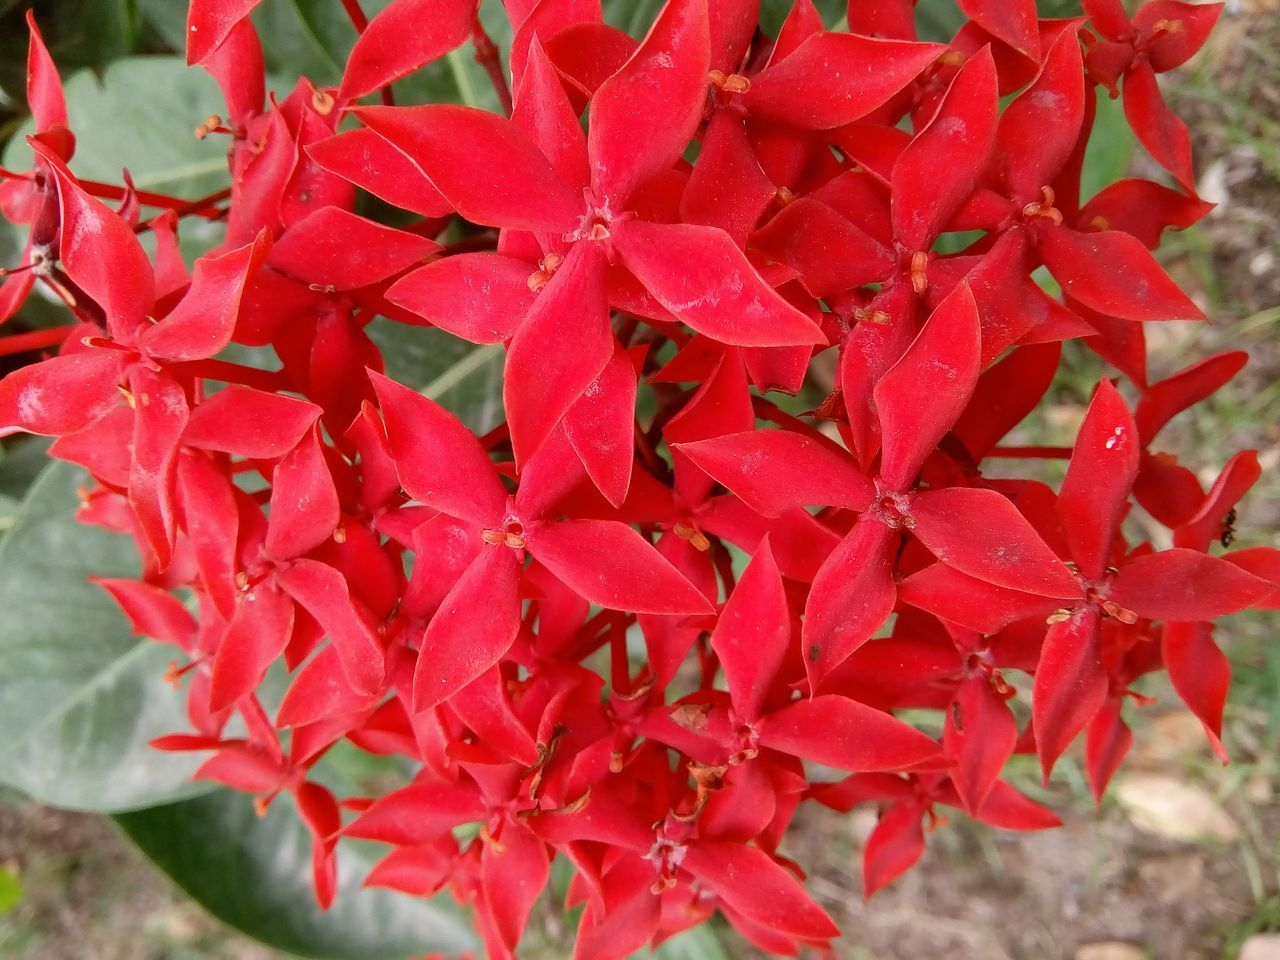 red, ixora, growth, beauty in nature, petal, day, nature, outdoors, flower head, flower, fragility, close-up, blooming, no people, freshness